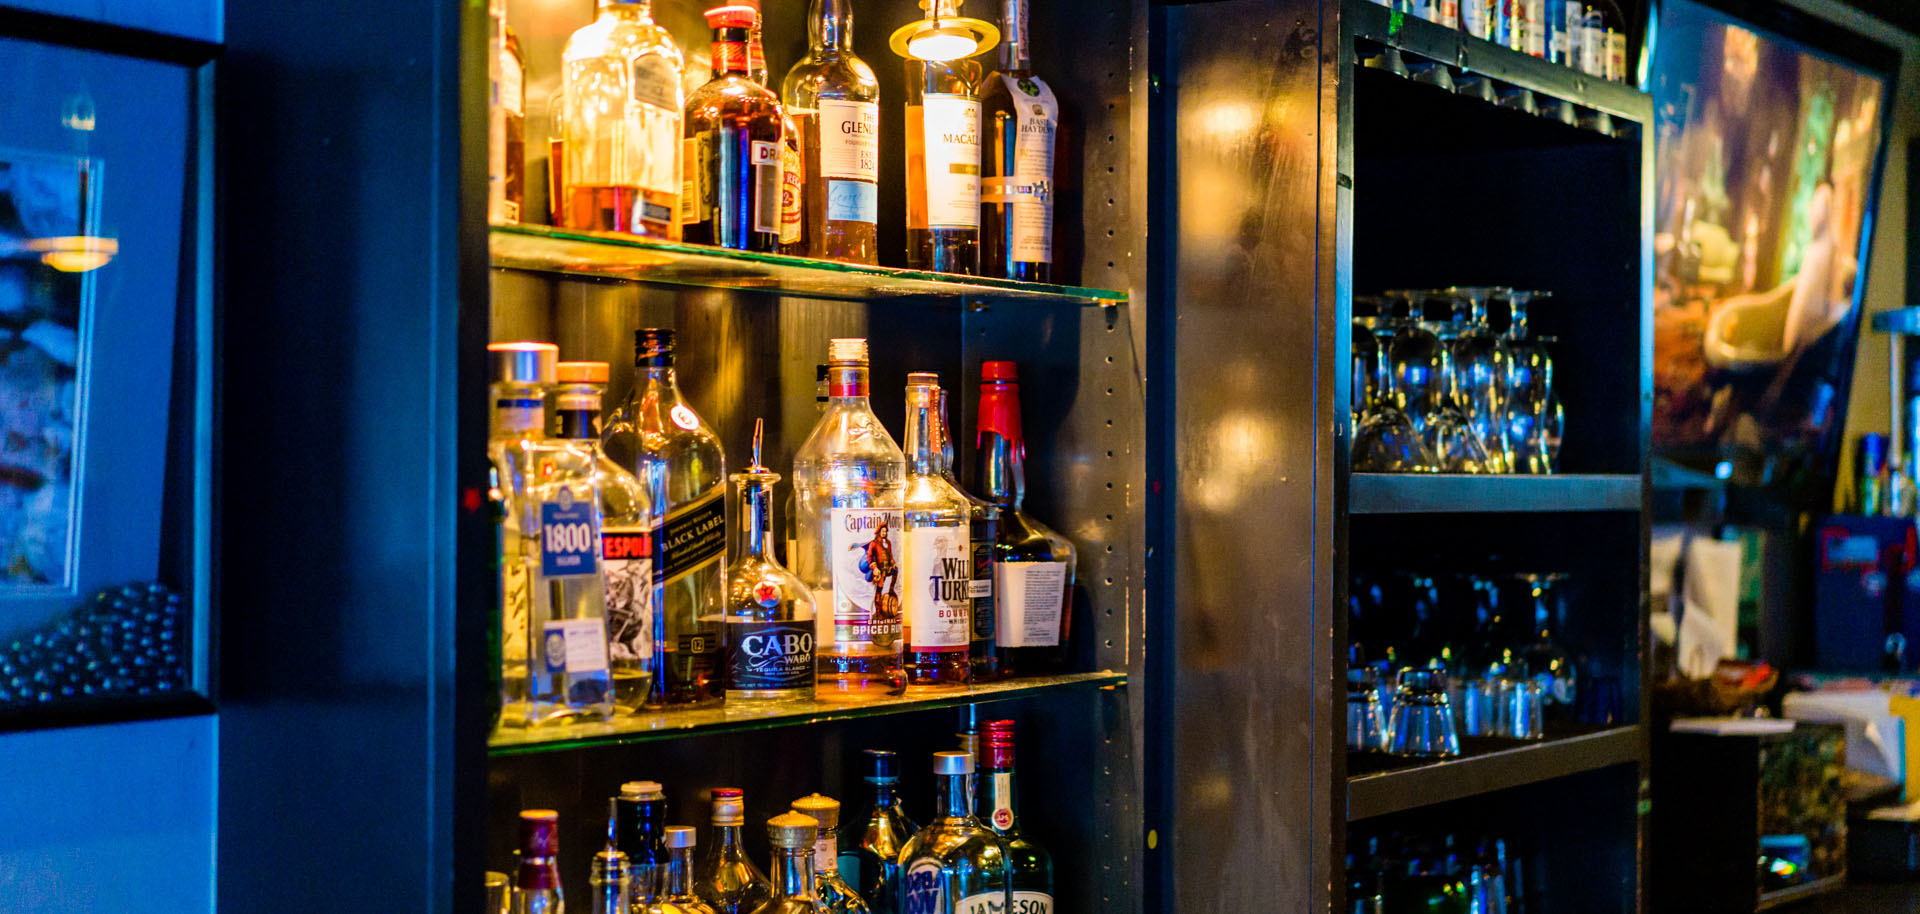 Alcohol behind the bar sits in an open bookcase at On The Rocks in Tulsa, Oklahoma.